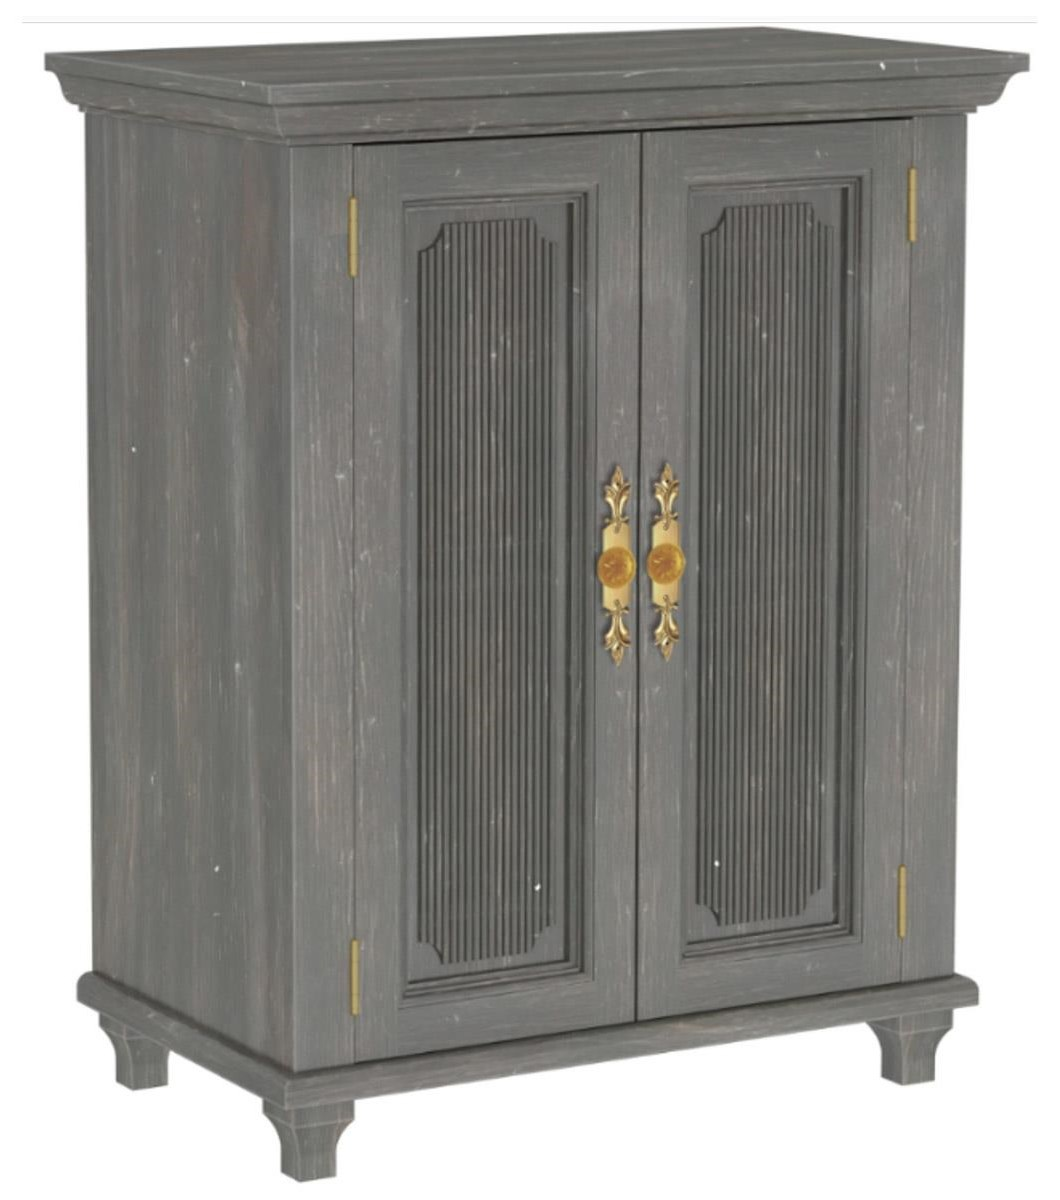 Eden Eden Fireplace Accent Cabinet by ClassicFlame at Morris Home